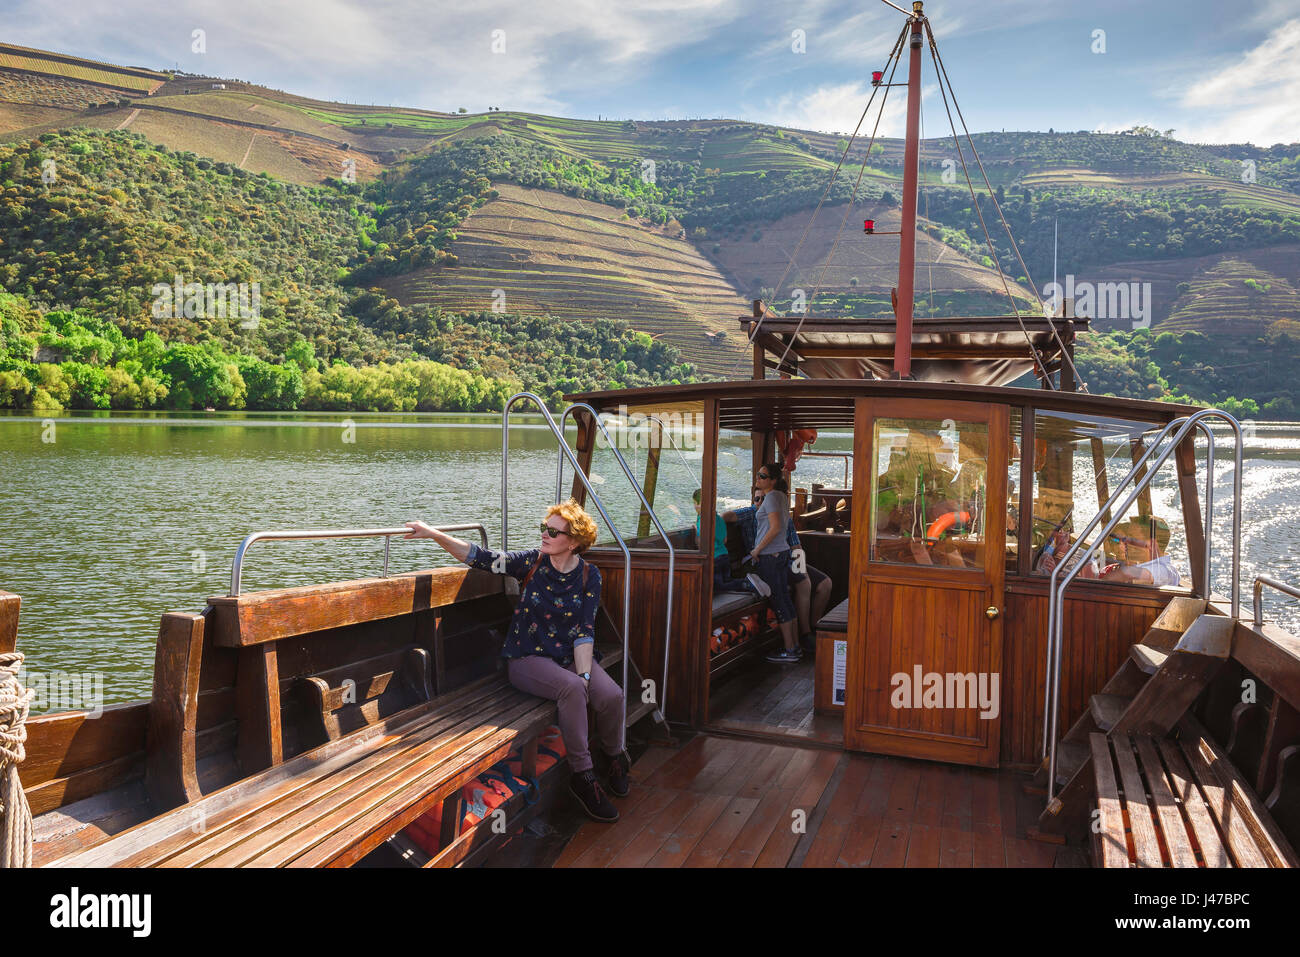 Douro River Valley, tourists in the Douro Valley tour the Rio Douro in a traditional rabelo boat, Portugal. - Stock Image